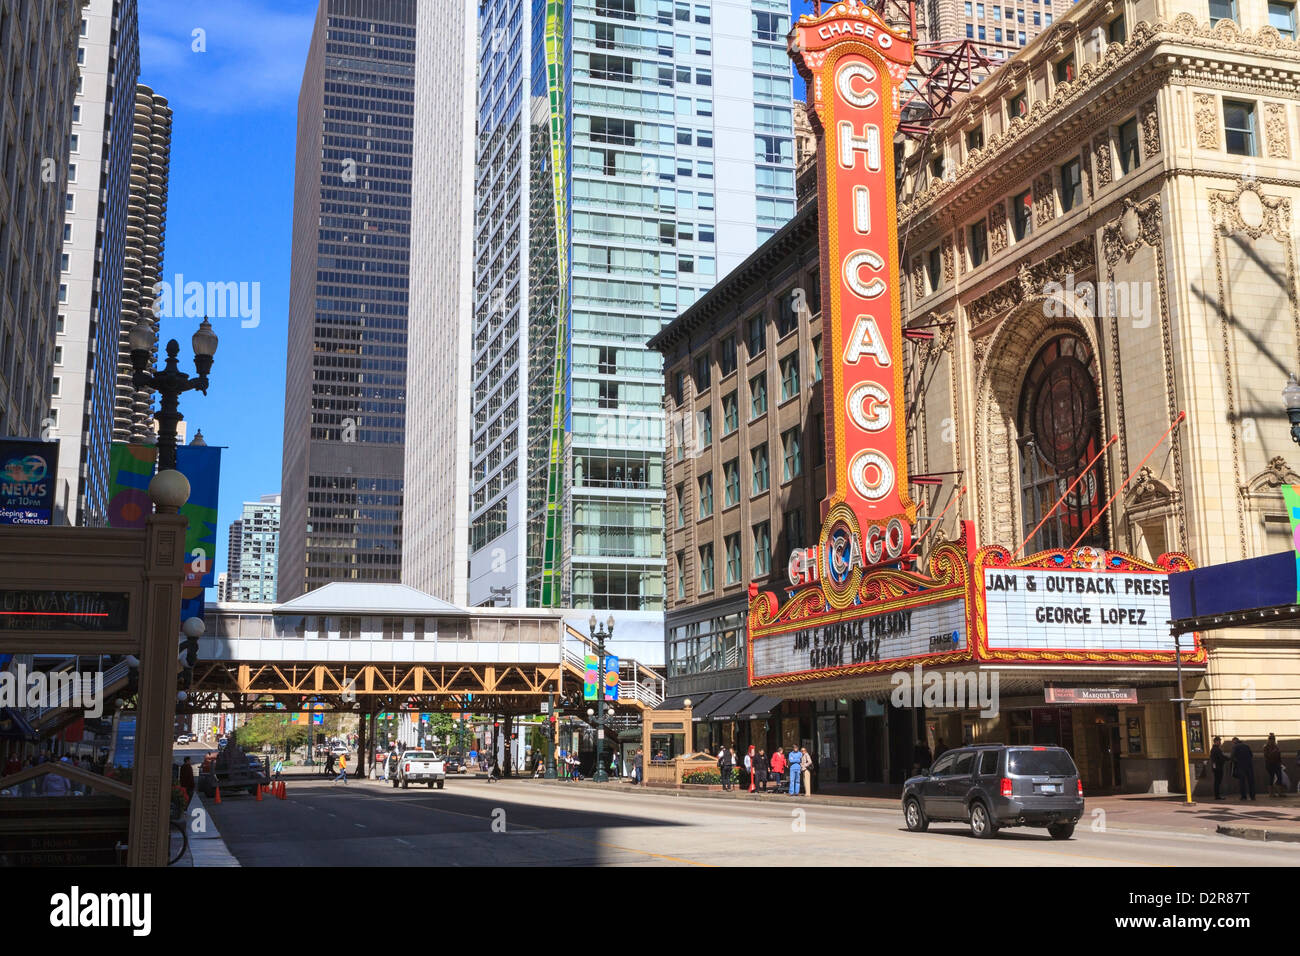 Chicago Theater, State Street, Chicago, Illinois, United States of America, North America Stock Photo